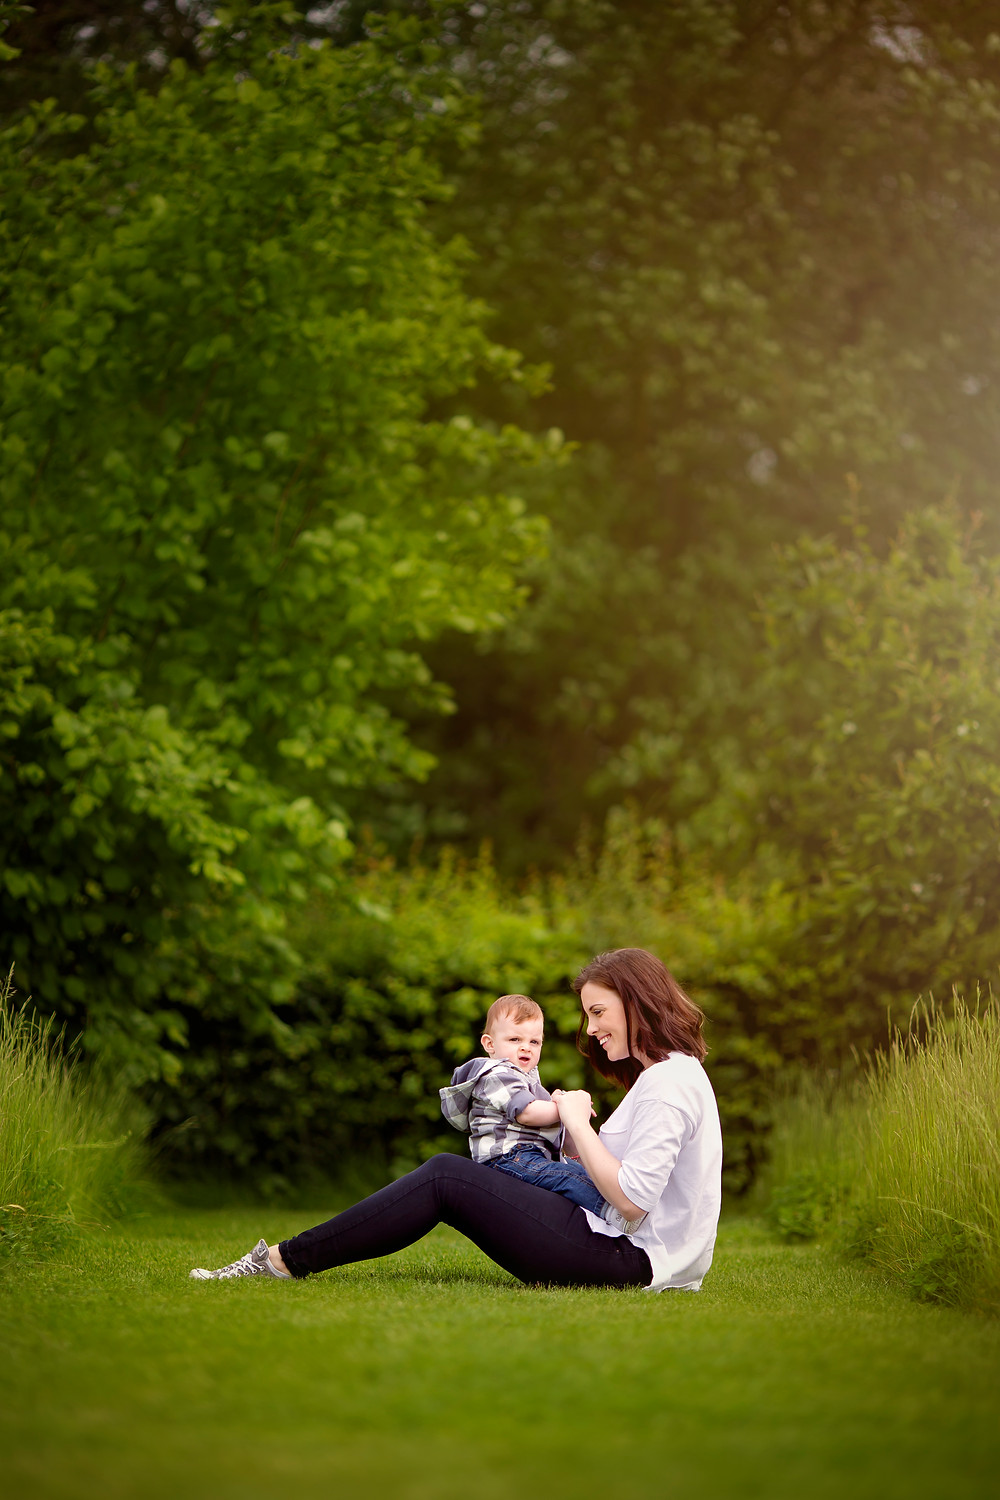 kent family Photographer. mum and baby sitting on green grass in the sunset